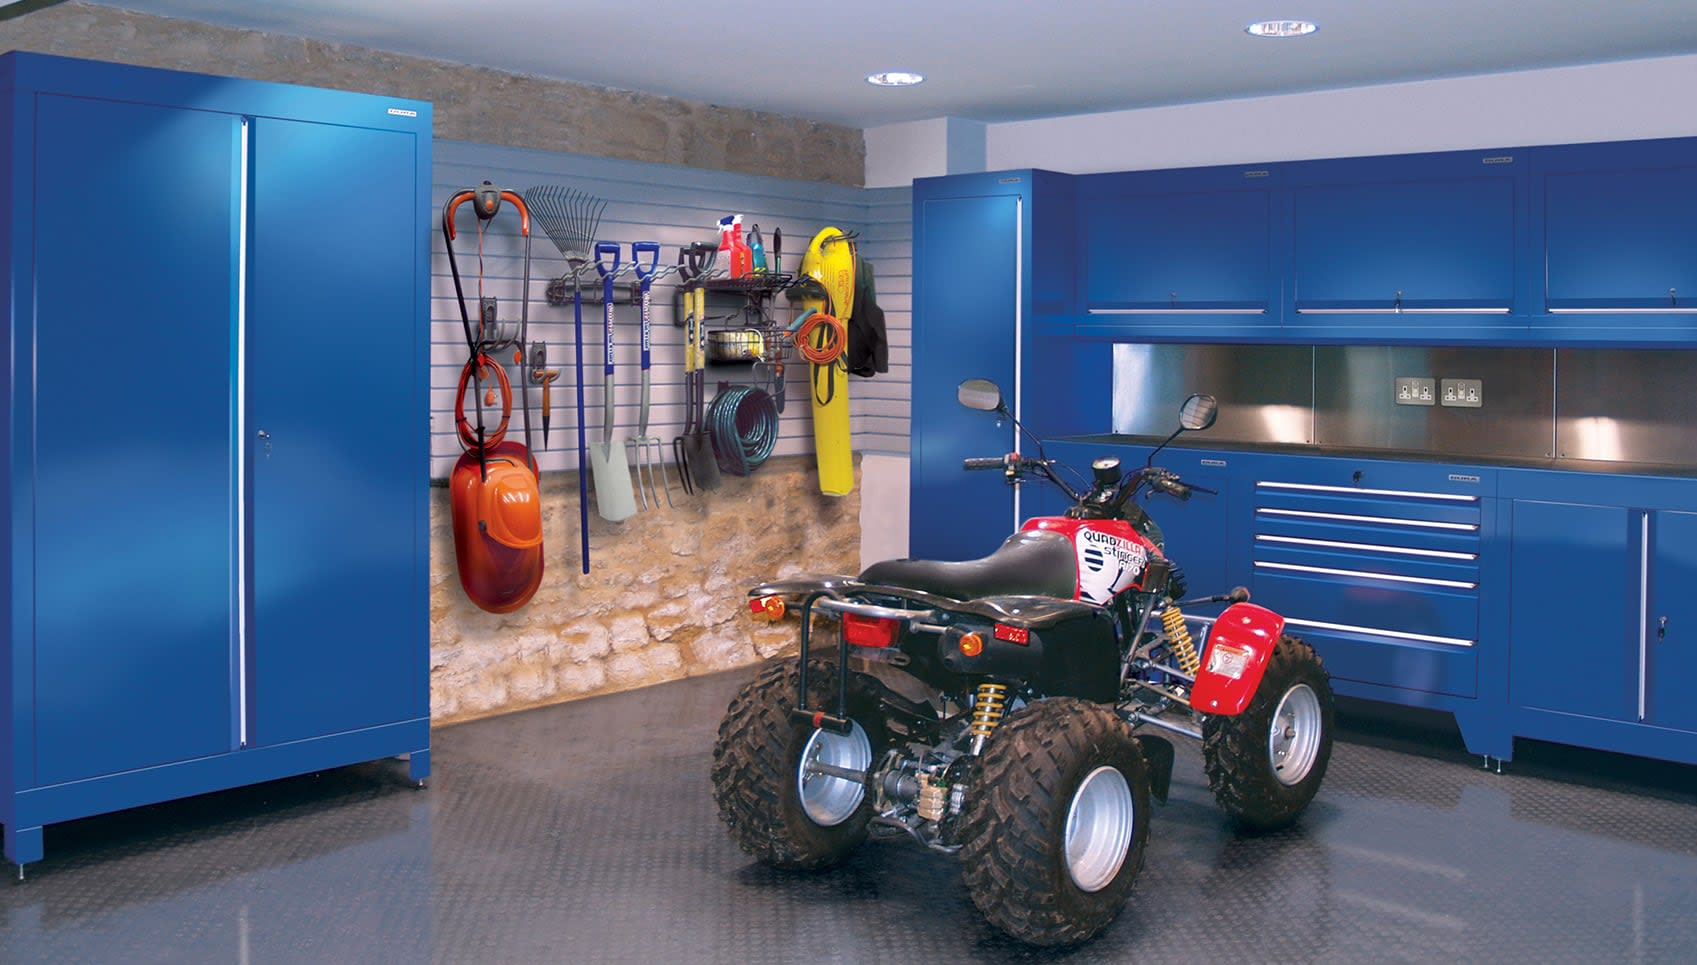 Motorcyclist's Garage & Home Motorcycle Workshop from Dura Garages